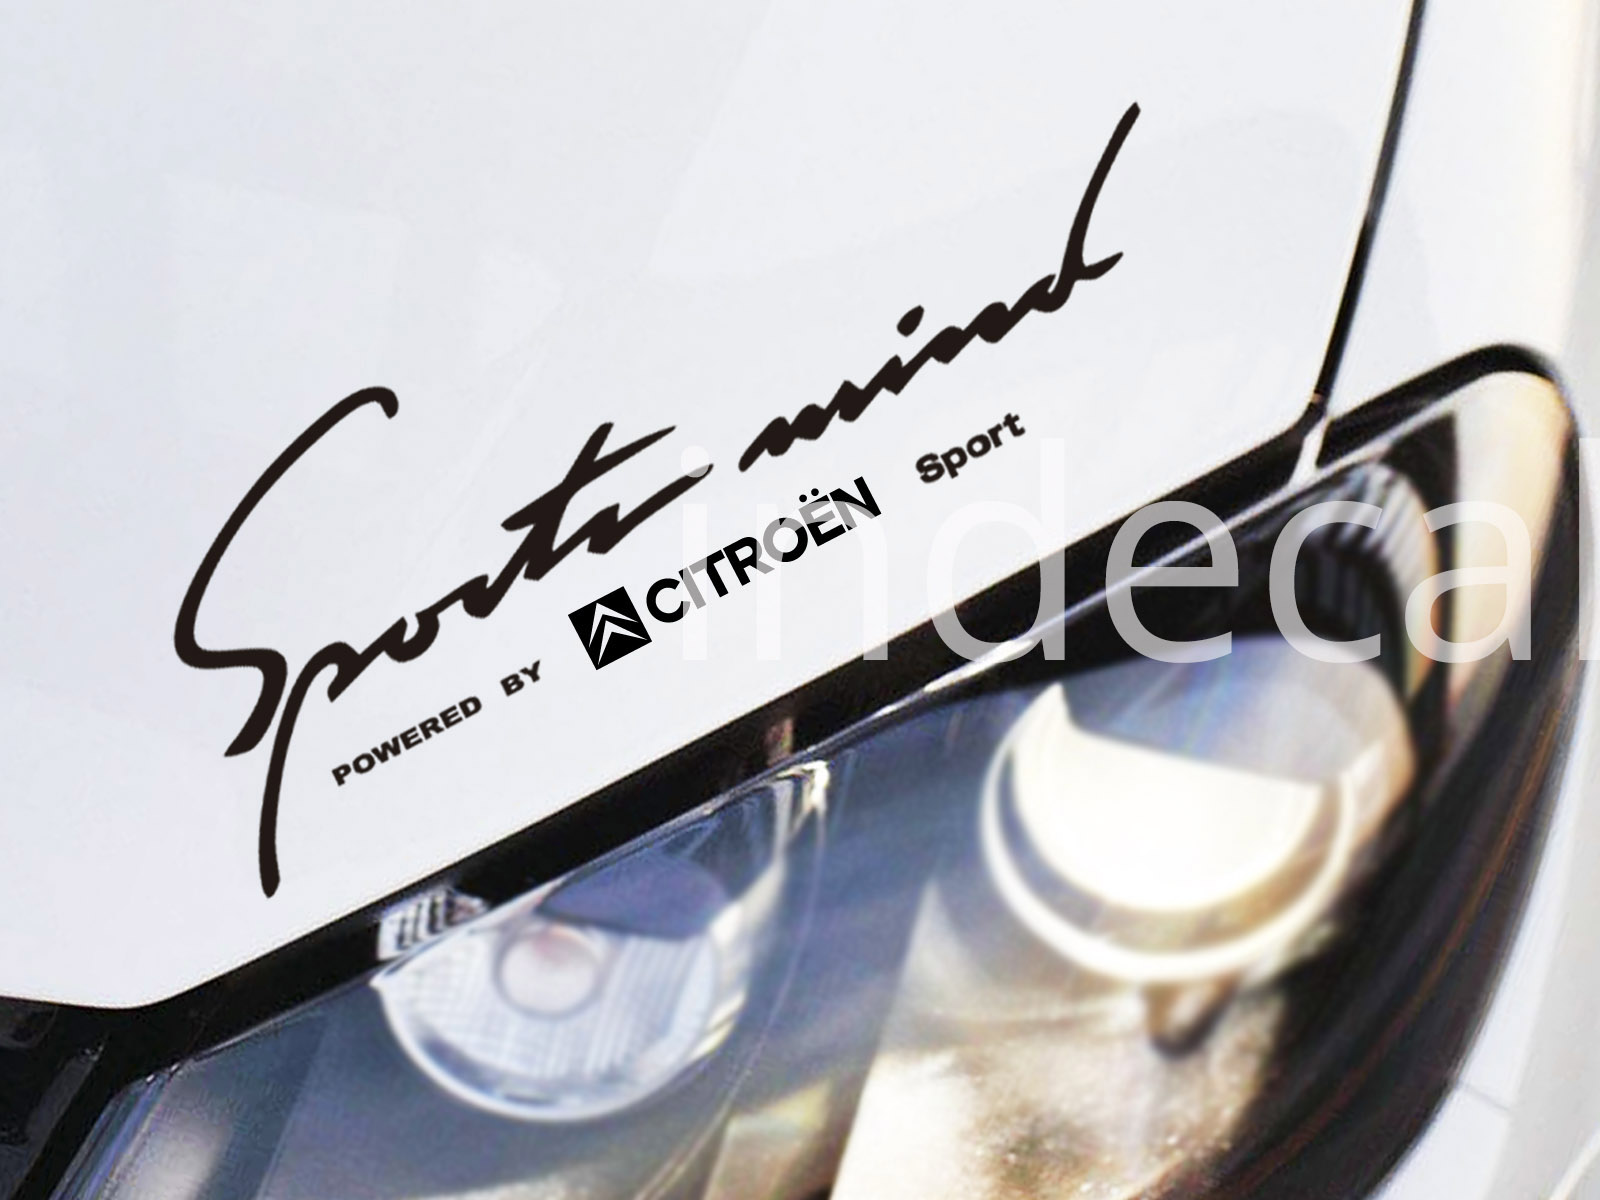 1 x Citroen Sports Mind Sticker - Black